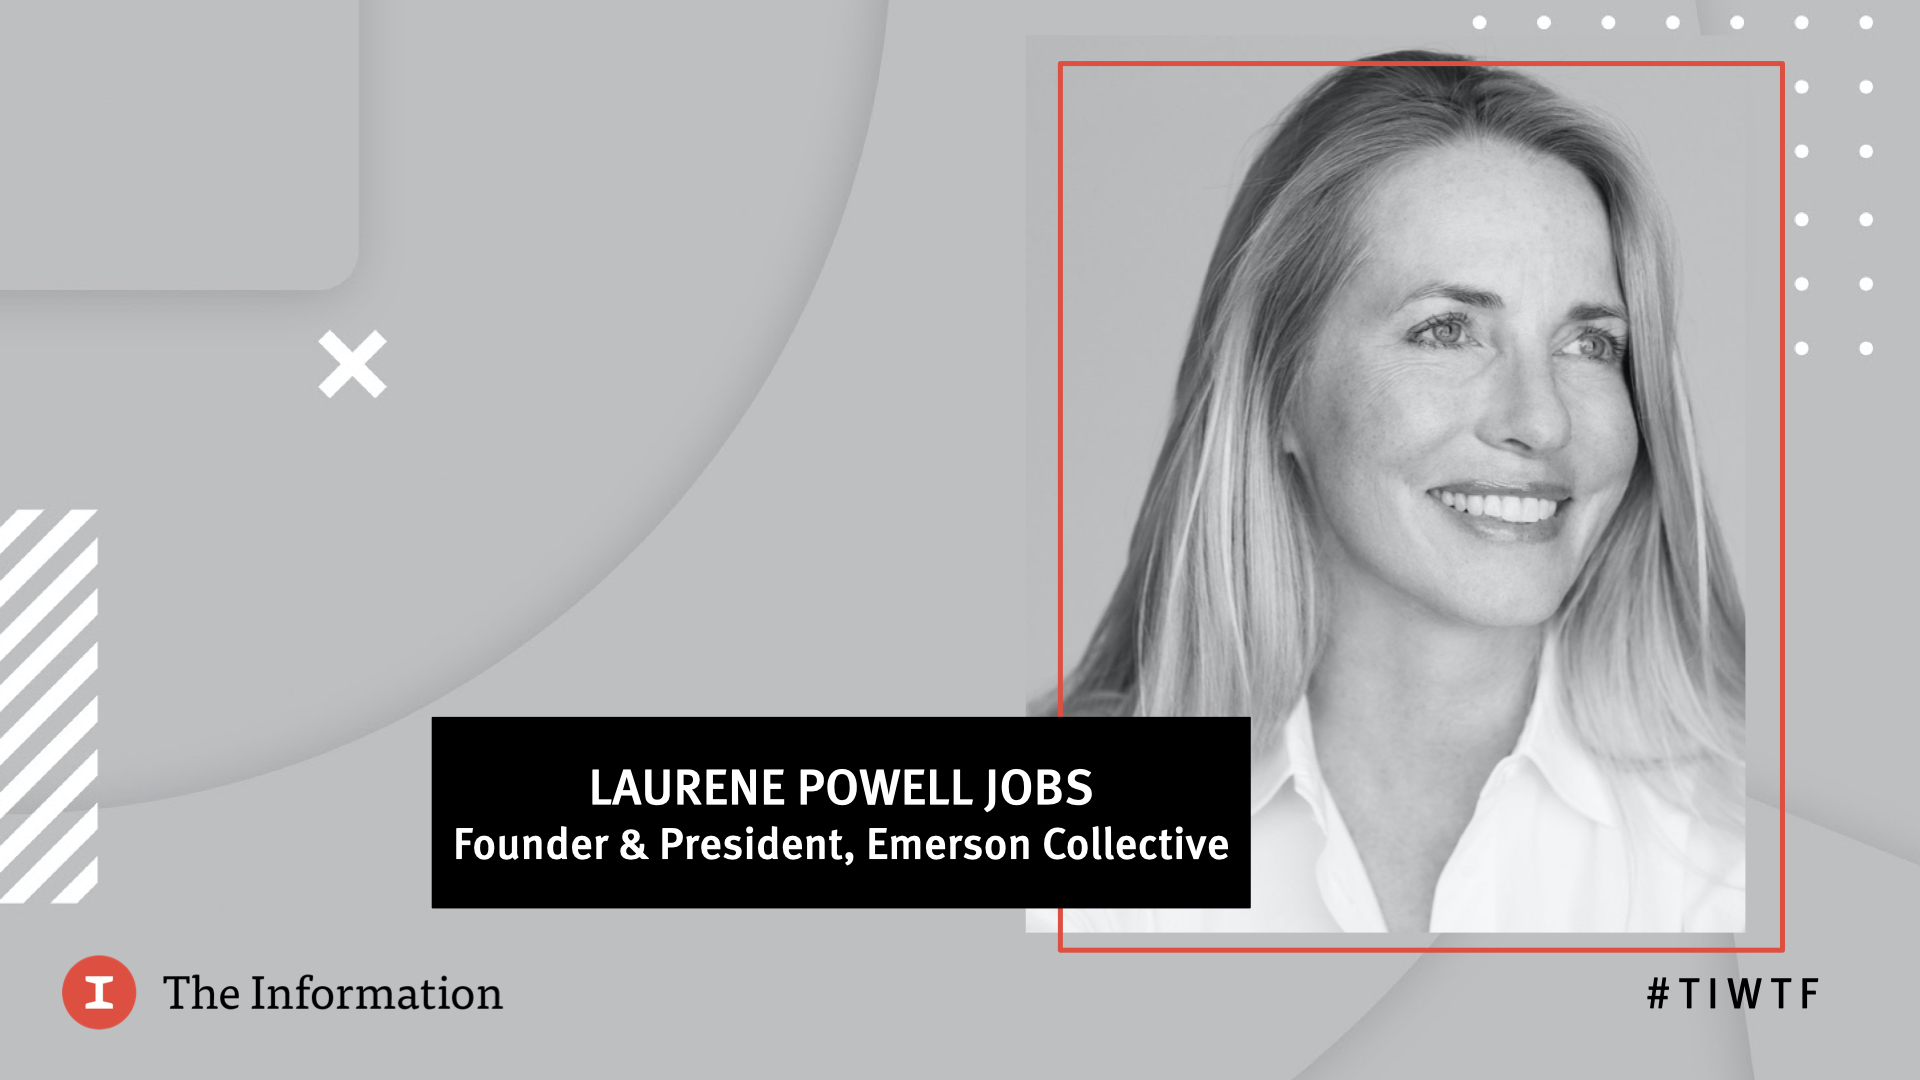 WTF 2020 - Emerson Collective's Founder & President Laurene Powell Jobs in conversation with Jessica Lessin, Founder & CEO of The Information